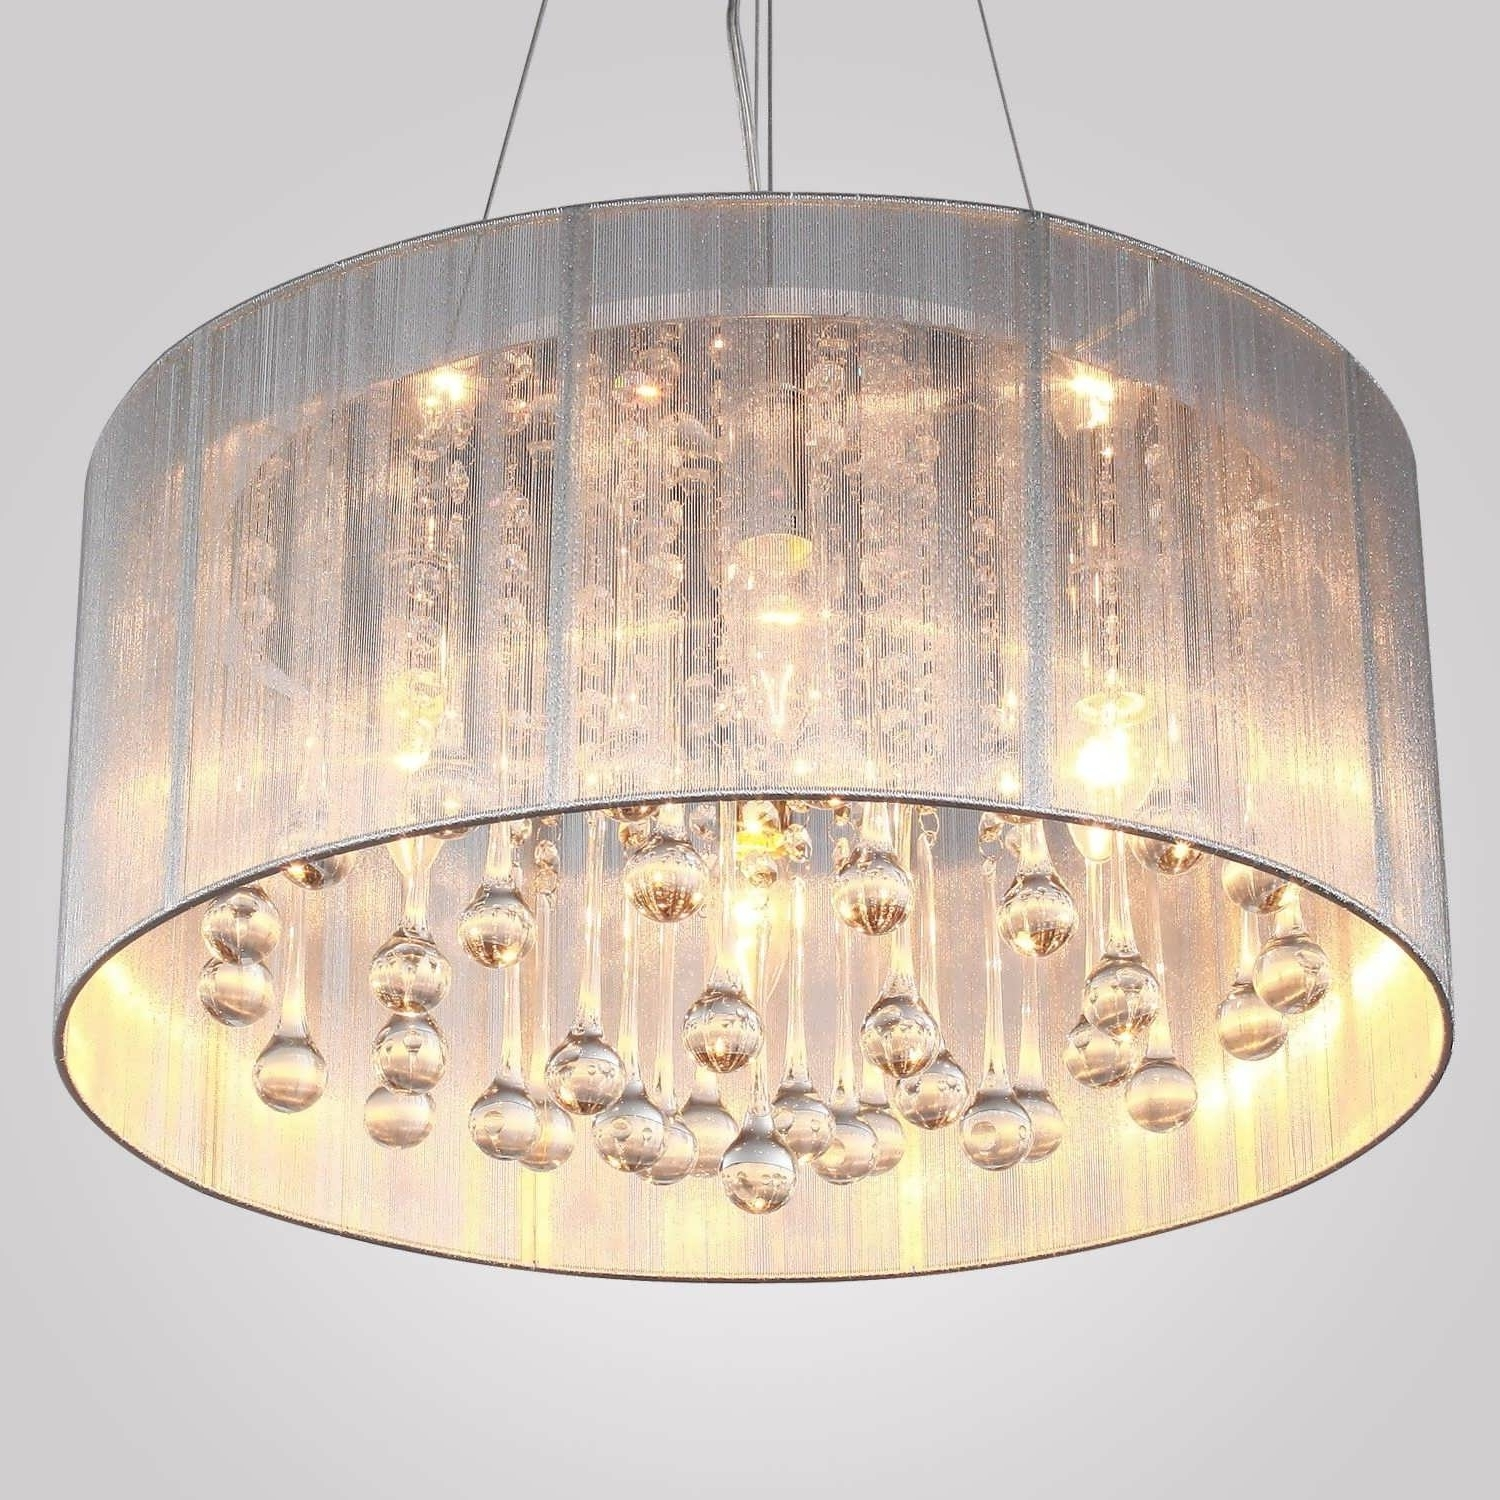 Well Liked Clip On Drum Chandelier Shades Intended For Chandeliers Design : Magnificent Best Clip On Drum Chandelier Shades (View 19 of 20)